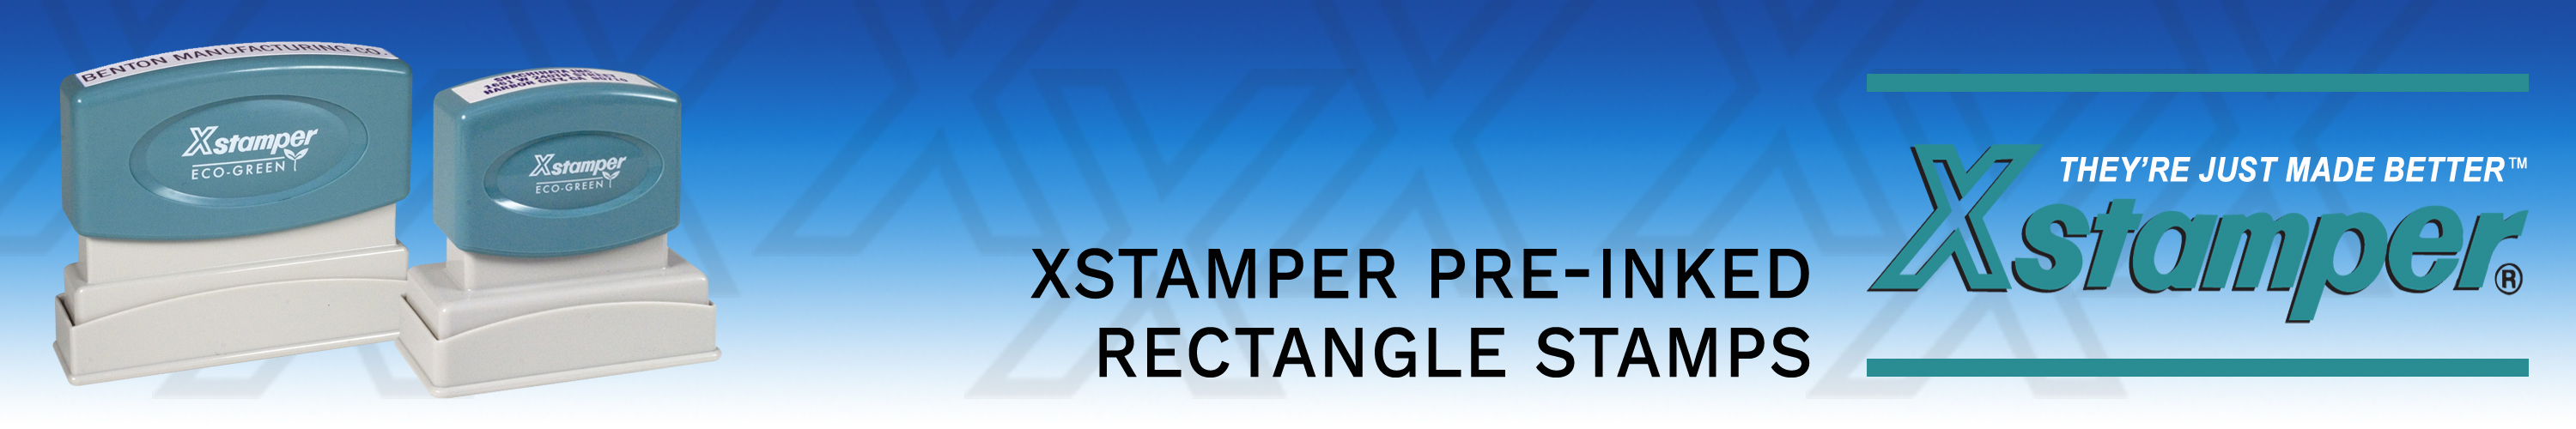 Xstamper Rectangle Stamps customized for you. Made and shipped daily.  No sales tax ever.